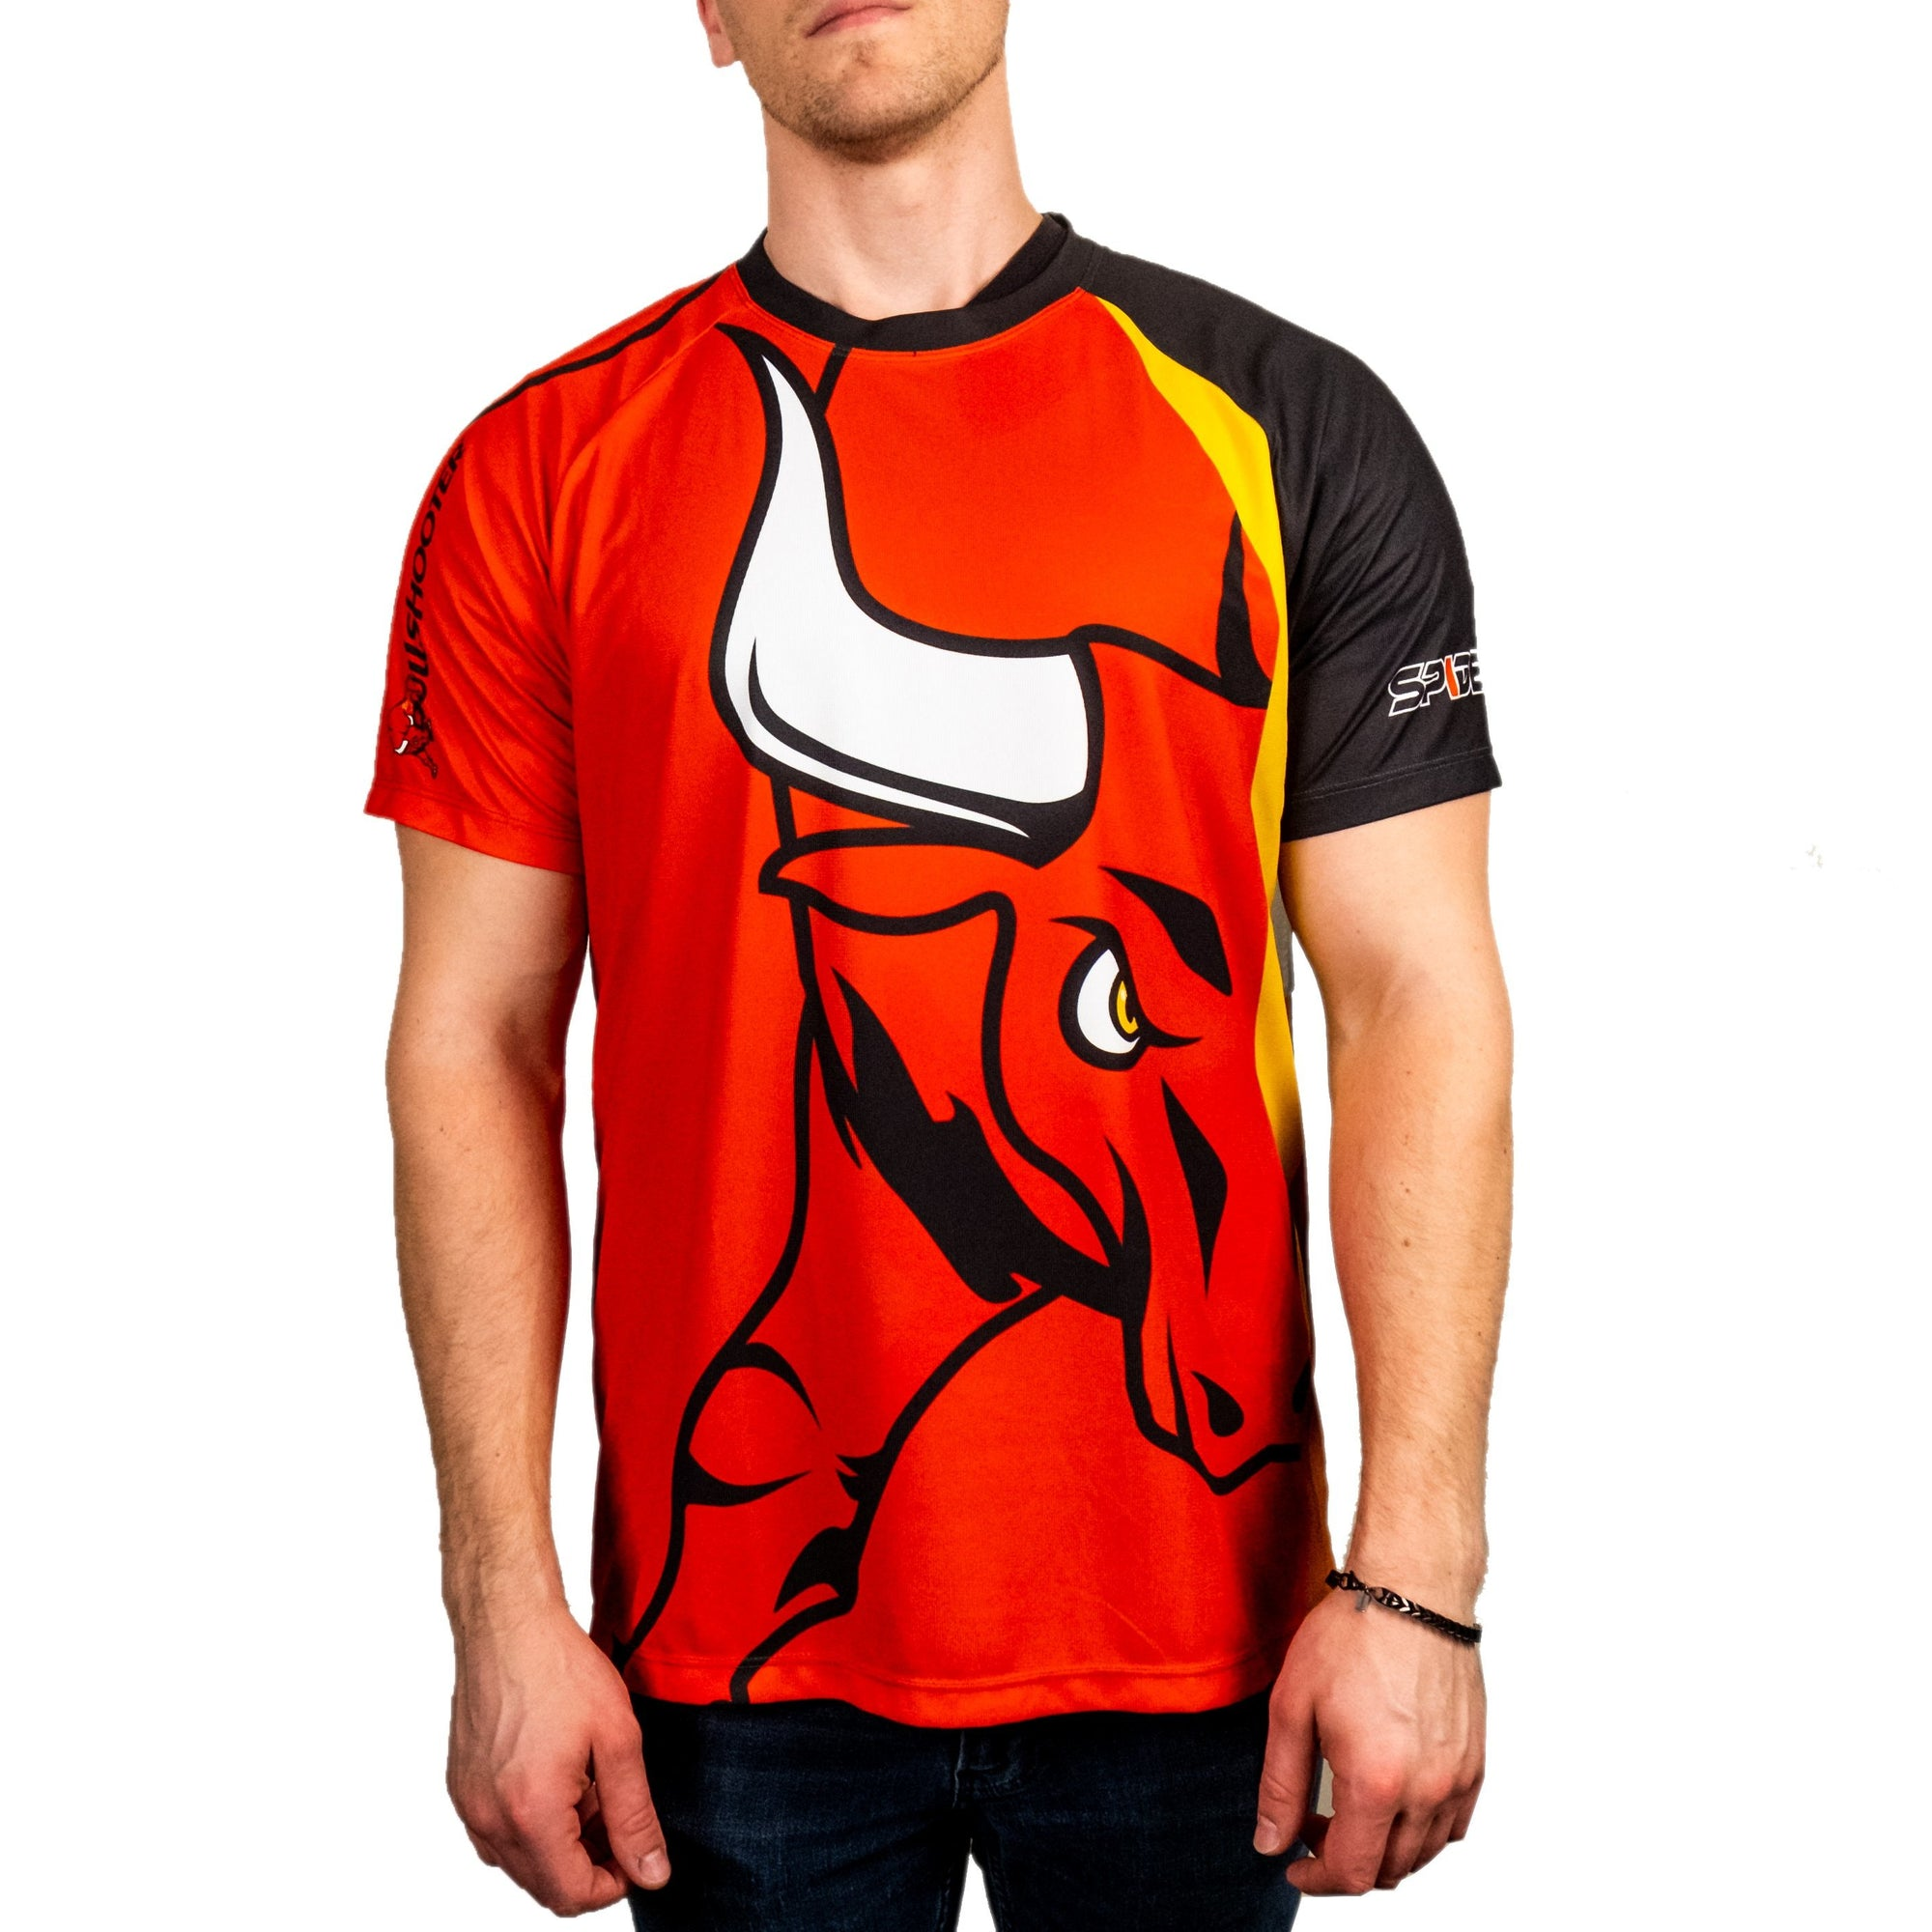 SS Jersey Red Bull